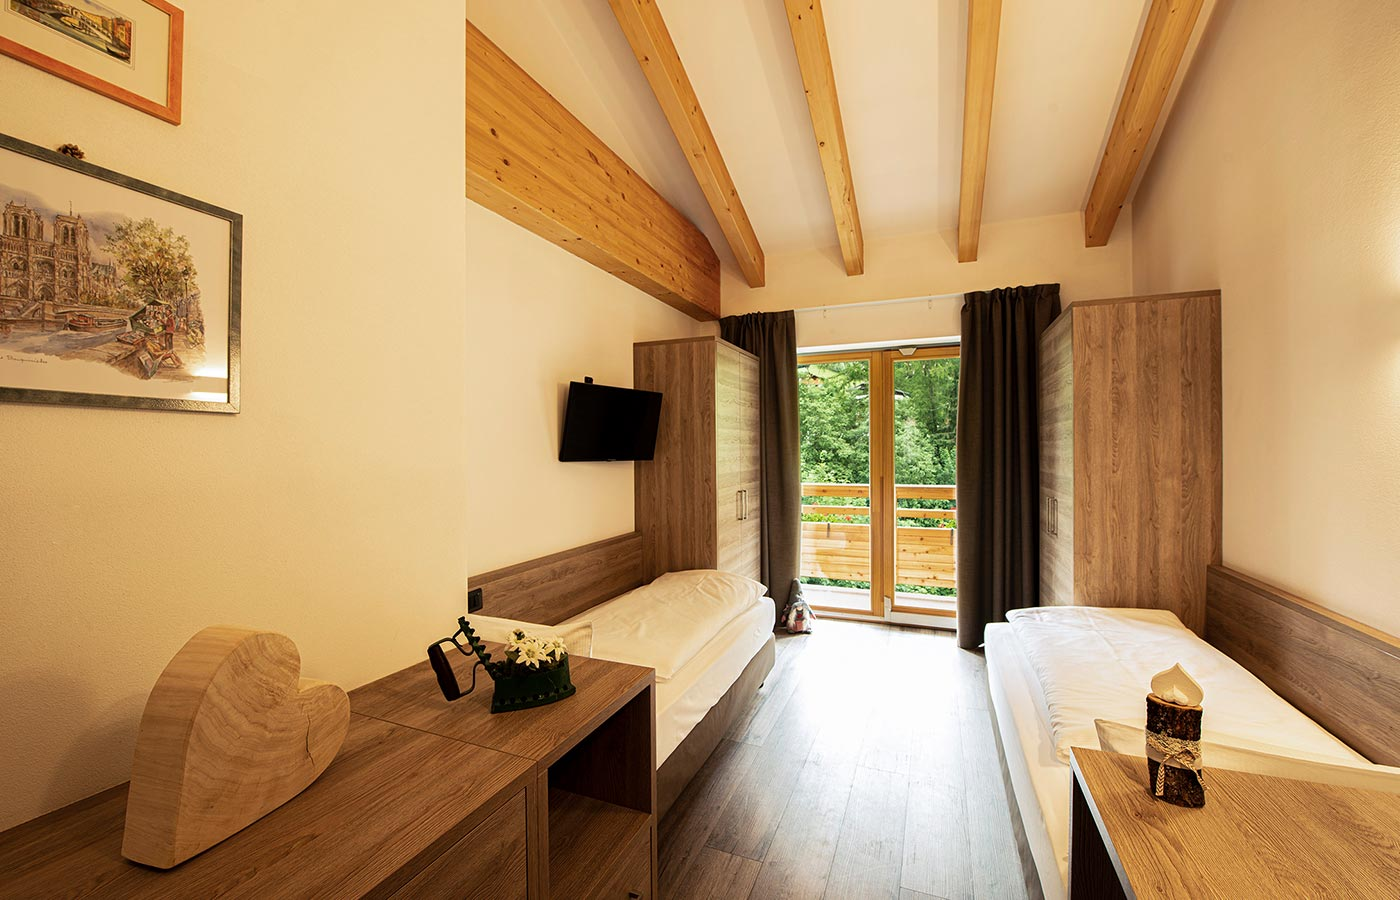 Single room at Chalet Aster